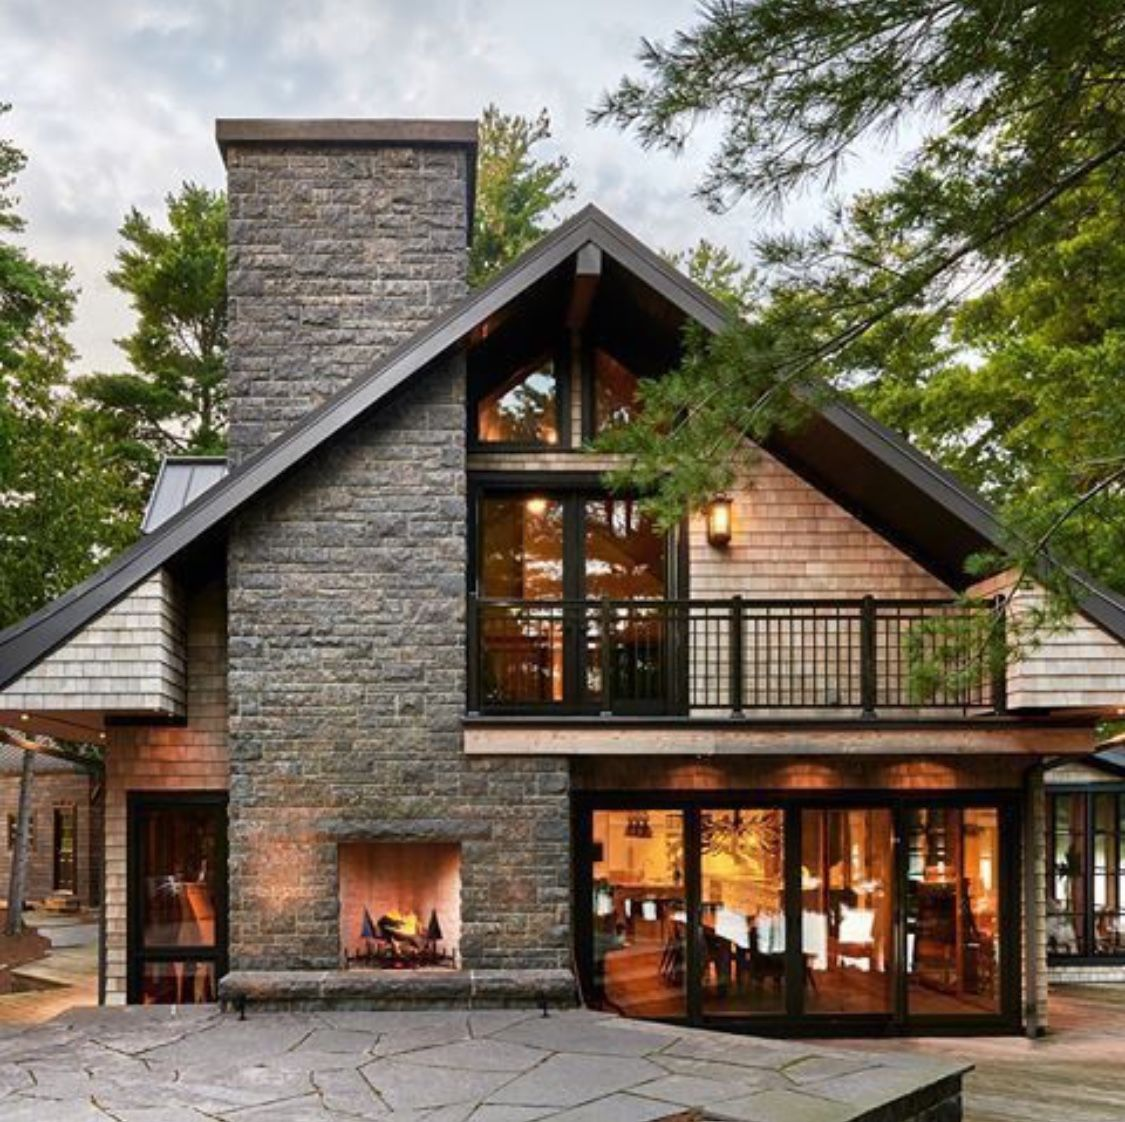 Exterior Rustic Cabin Style In 2020 Cottage Renovation House Designs Exterior Farmhouse Exterior Colors